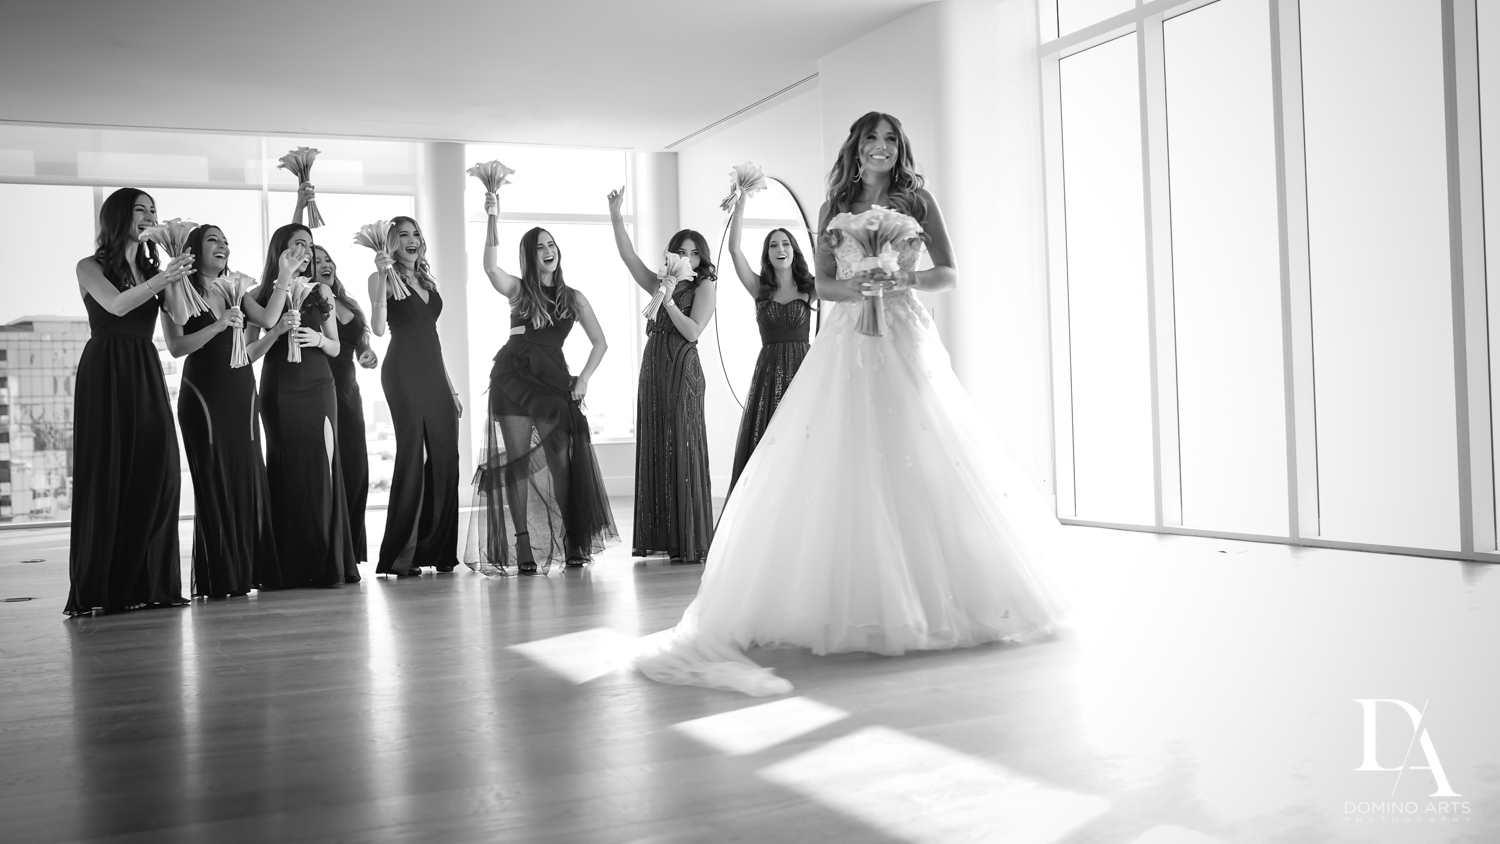 Fun bridesmaid pictures at Faena Hotel Miami Beach